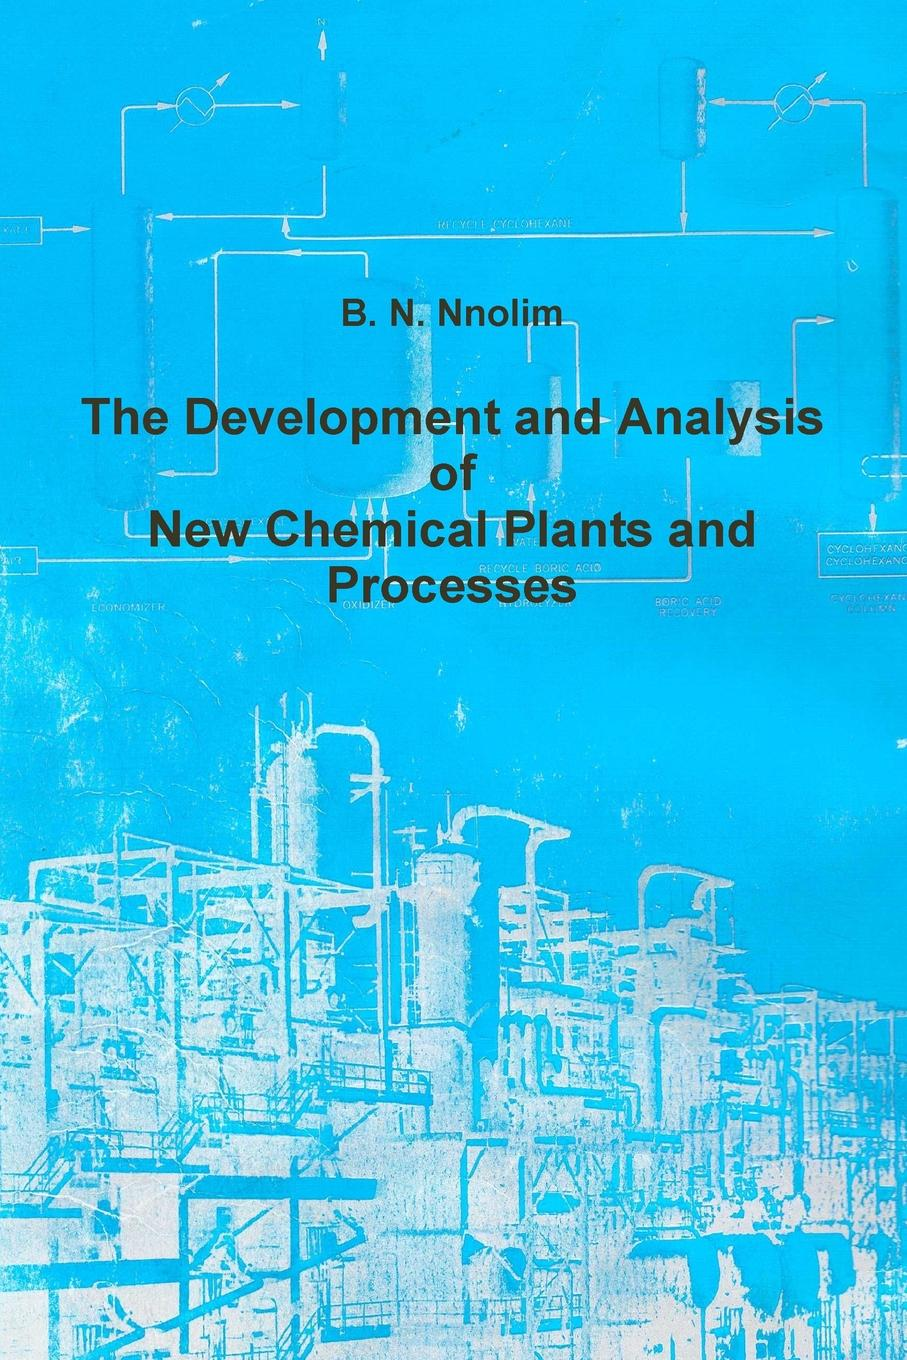 цена B. N. Nnolim The Development and Analysis of New Chemical Plants and Processes онлайн в 2017 году